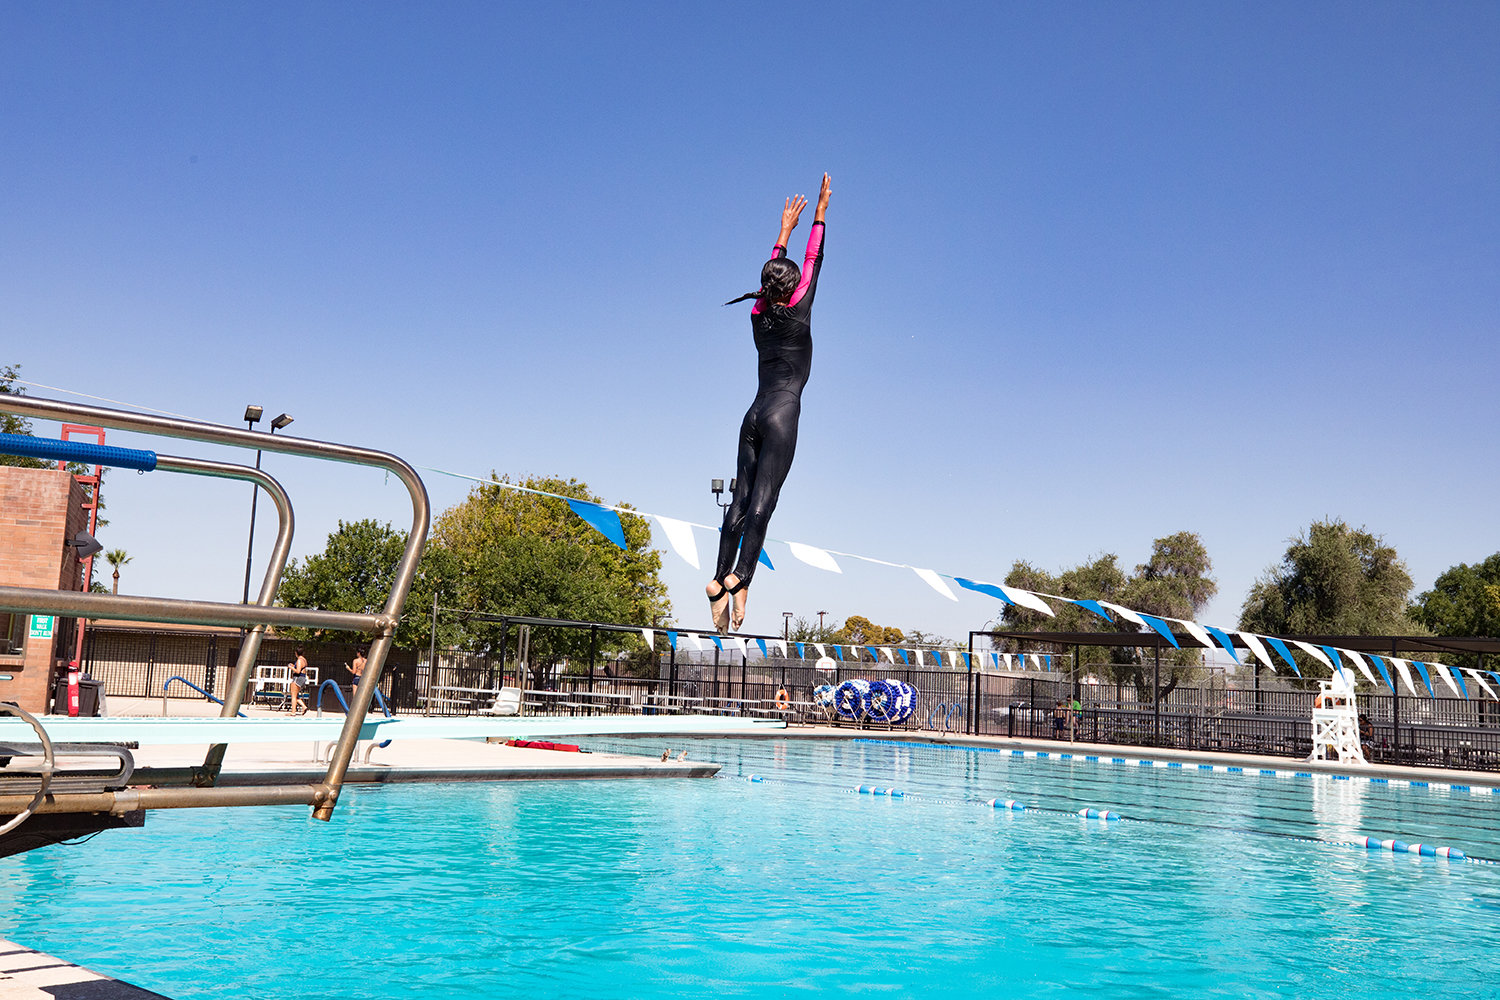 Goodyear's community pool is scheduled to reopen Saturday, May 23 along with the city's splash pad and skate park.